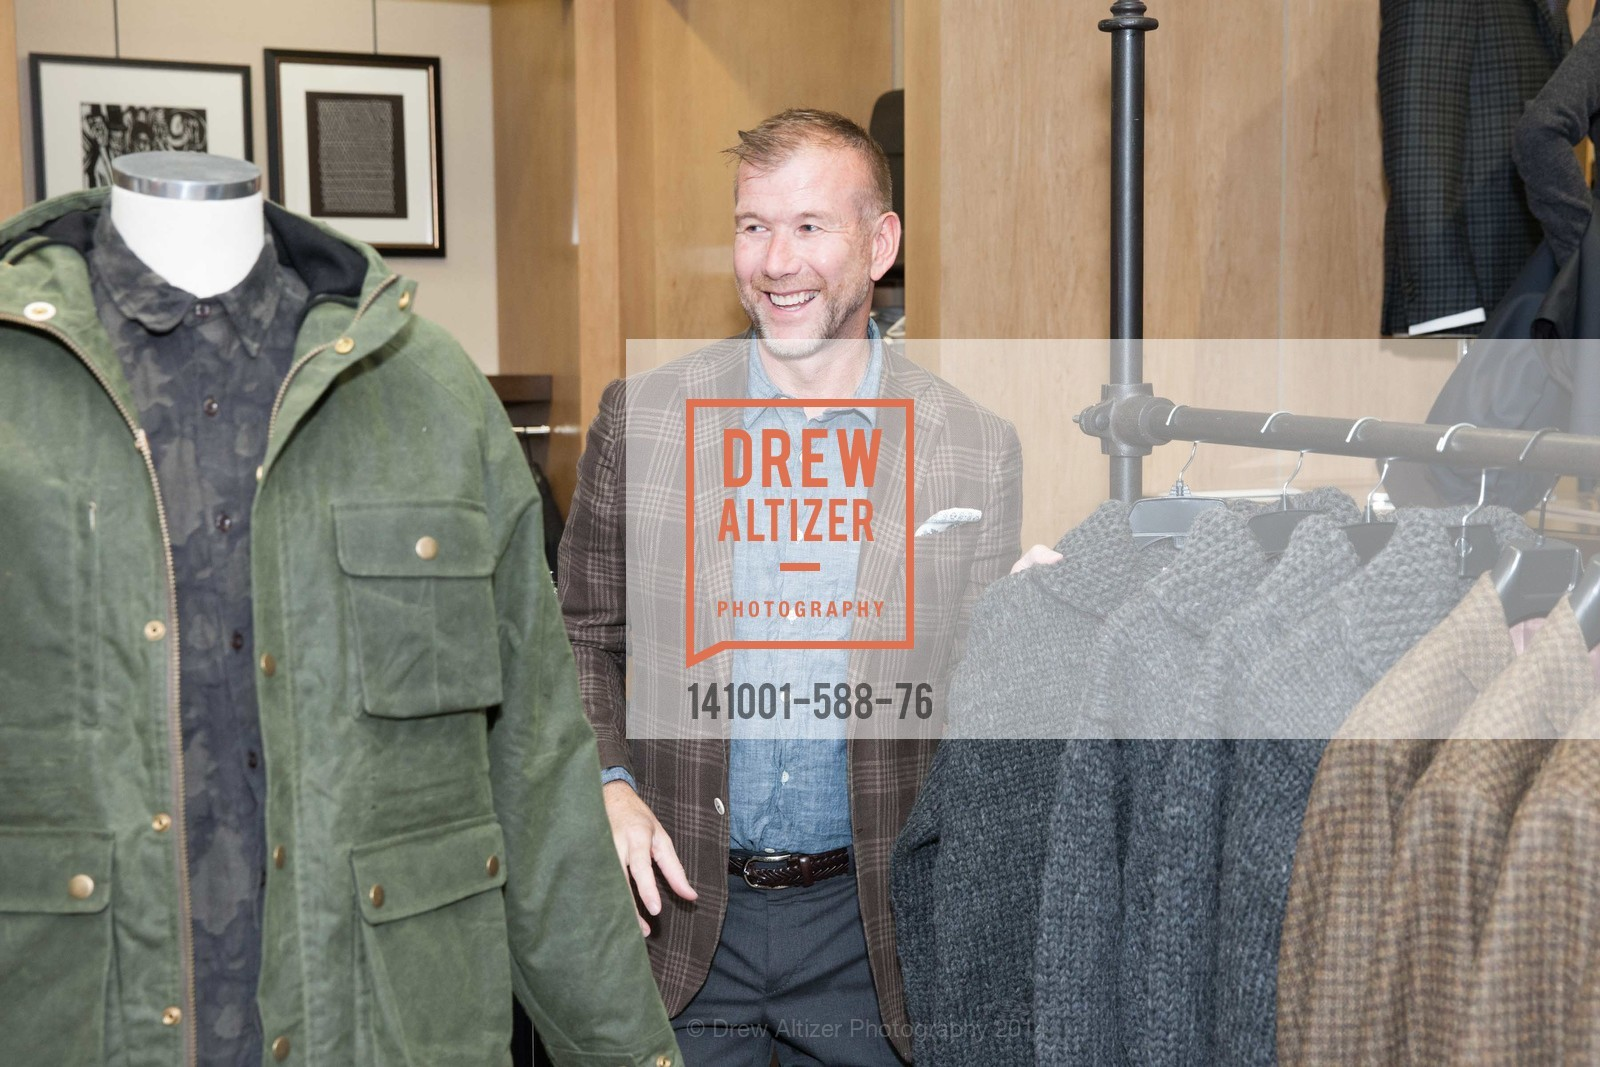 Kevin Harter, ESQUIRE & BLOOMINGDALE'S SF Celebrate the Launch of FREEMANS SPORTING GOODS, US, October 2nd, 2014,Drew Altizer, Drew Altizer Photography, full-service agency, private events, San Francisco photographer, photographer california